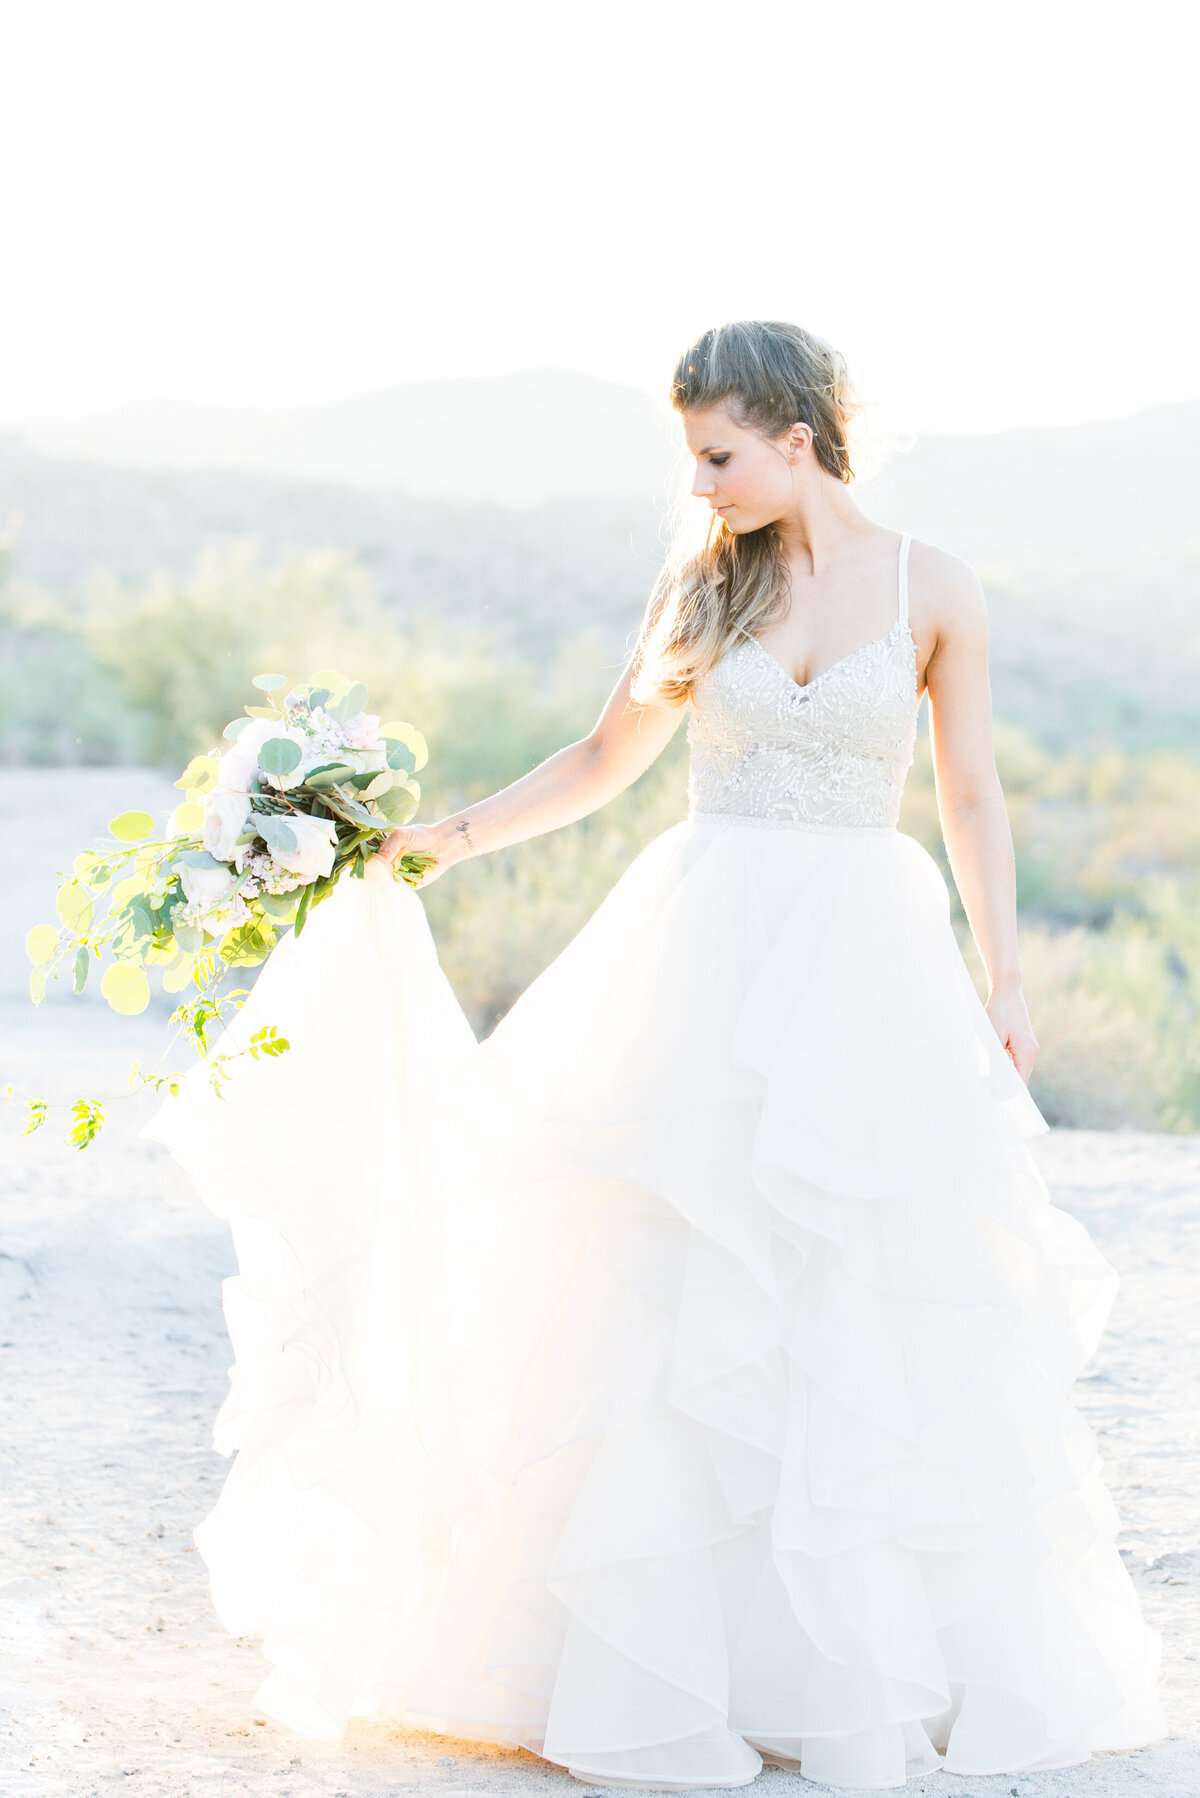 A bride swishes her Watters dress while being photographed in the Arizona desert